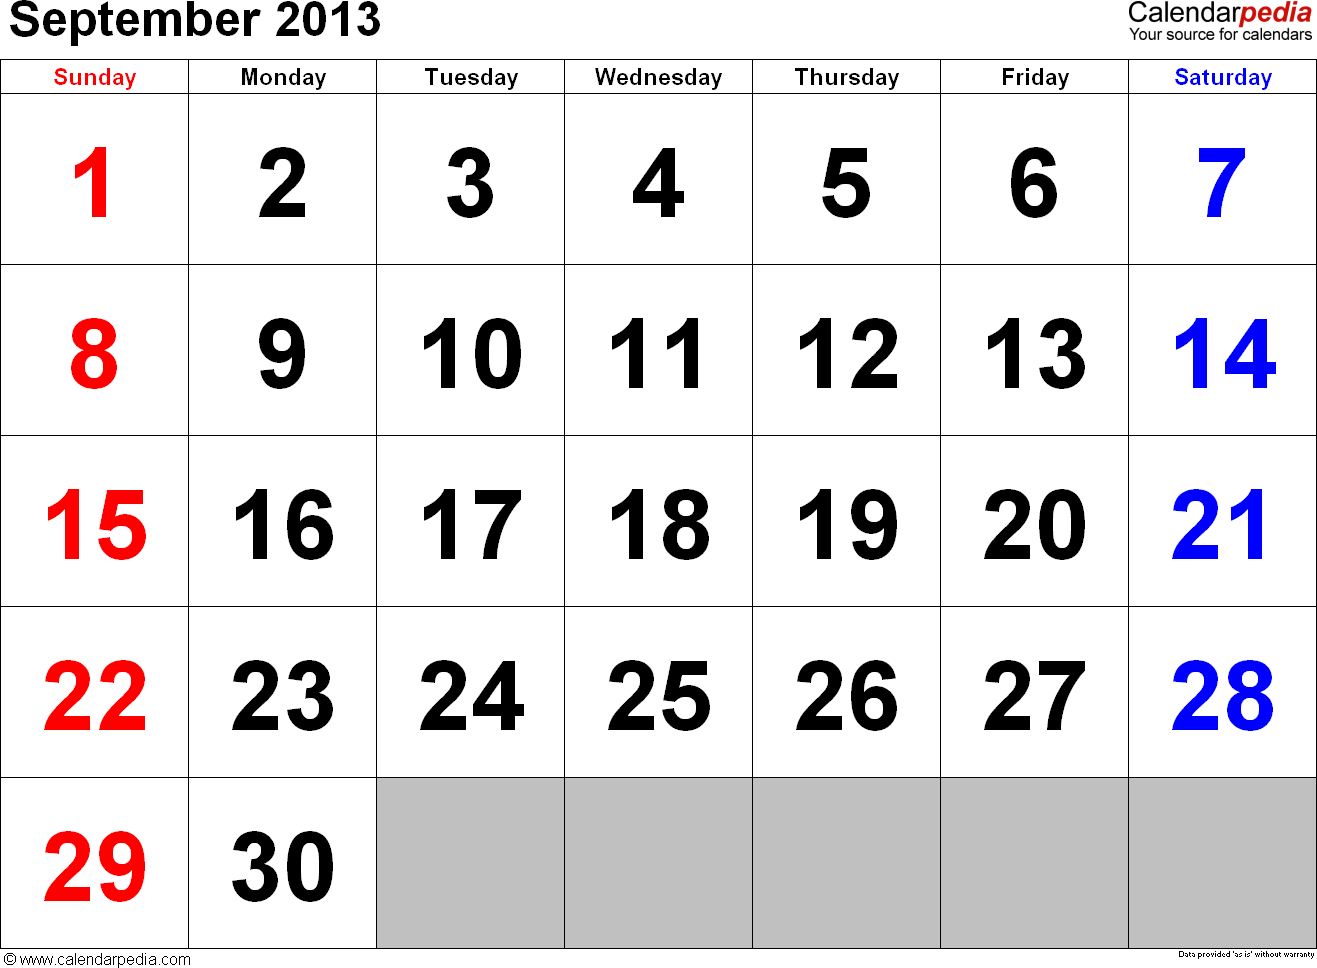 September 2013 calendar, landscape orientation, large numerals, available as printable templates for Word, Excel and PDF